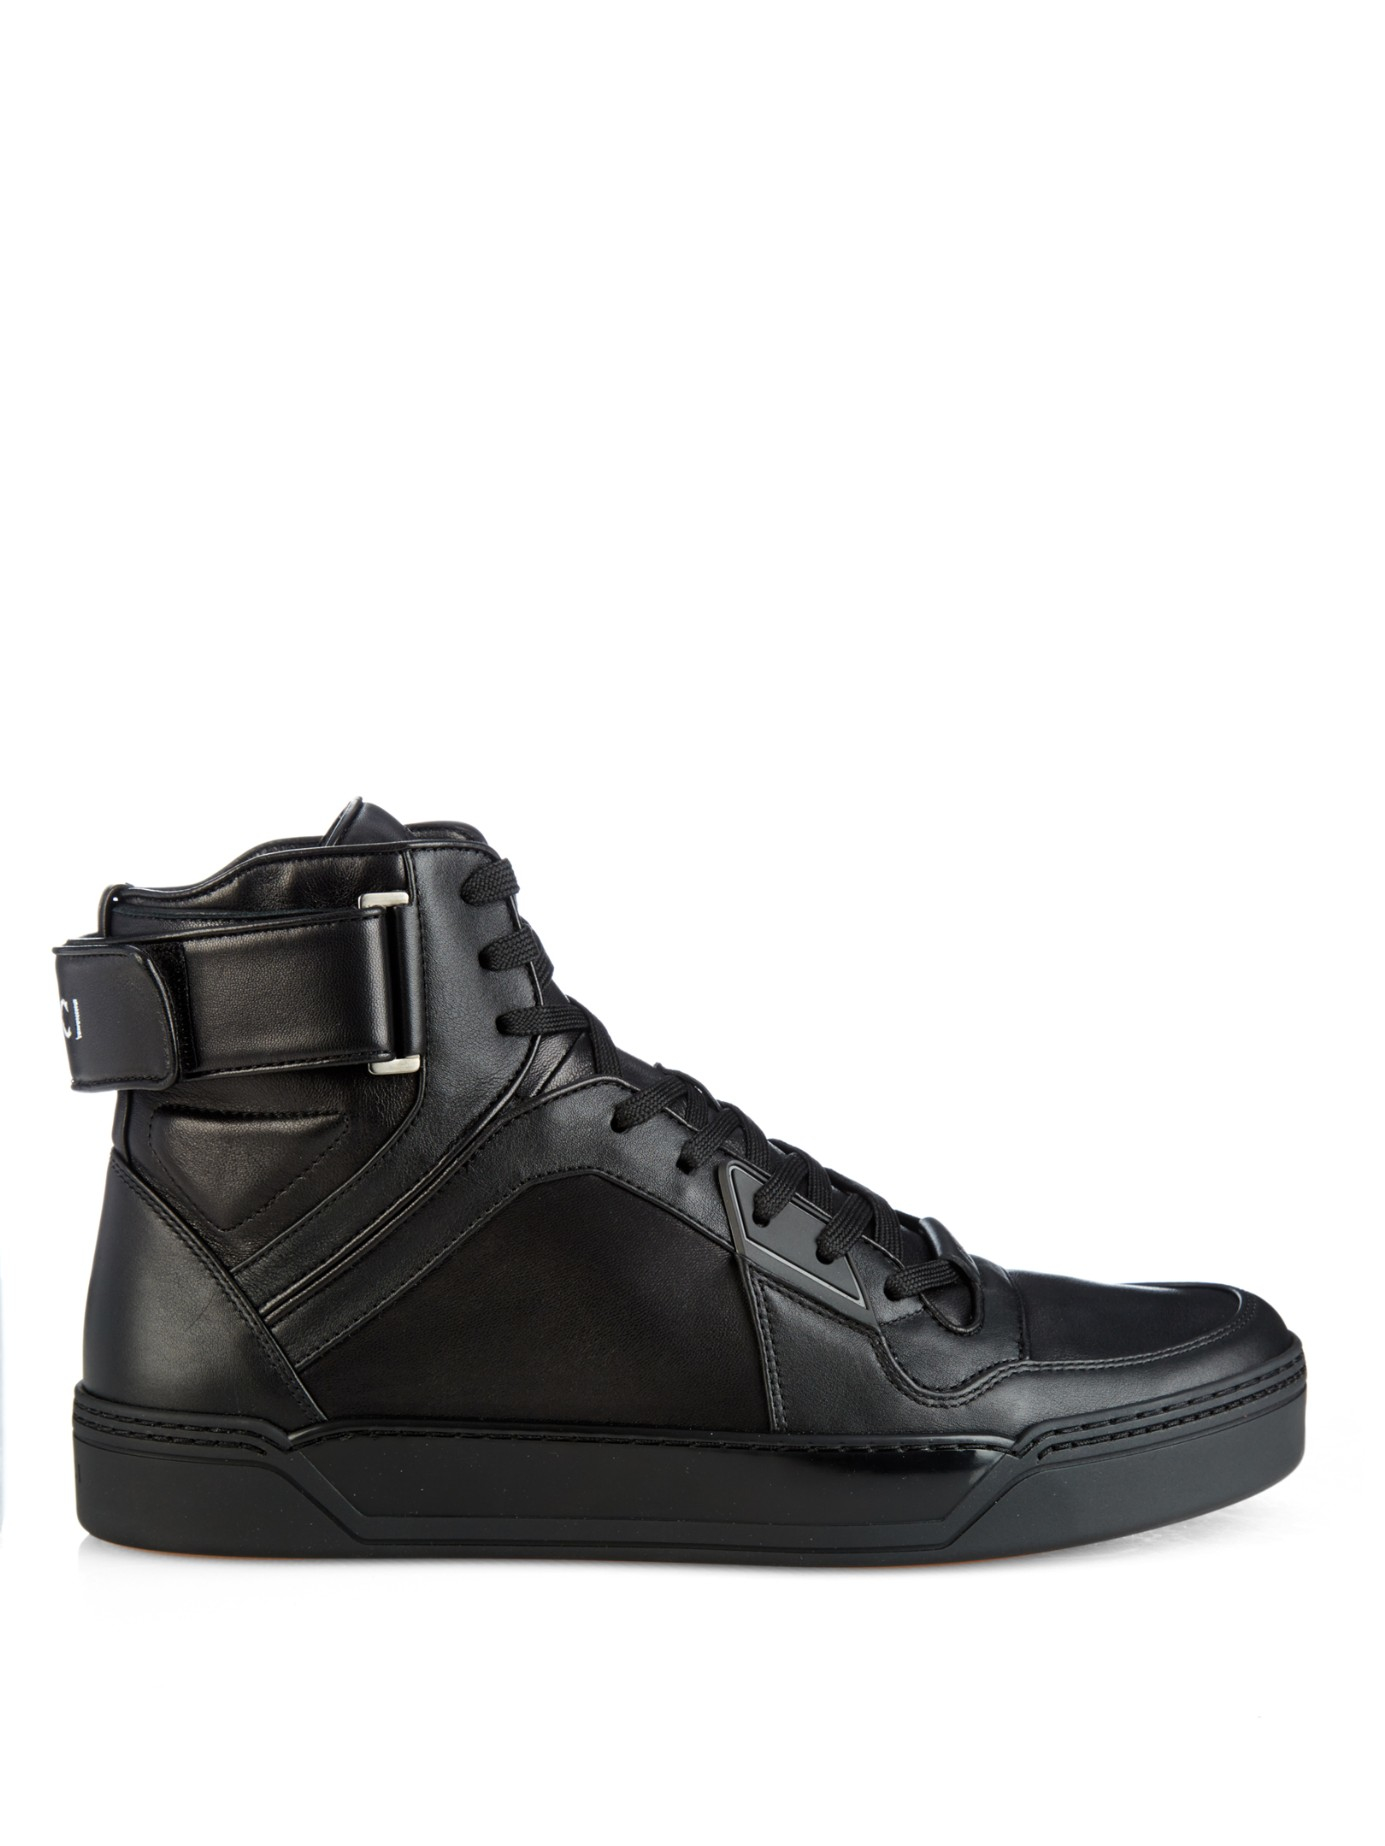 lyst gucci hightop leather sneakers in black for men